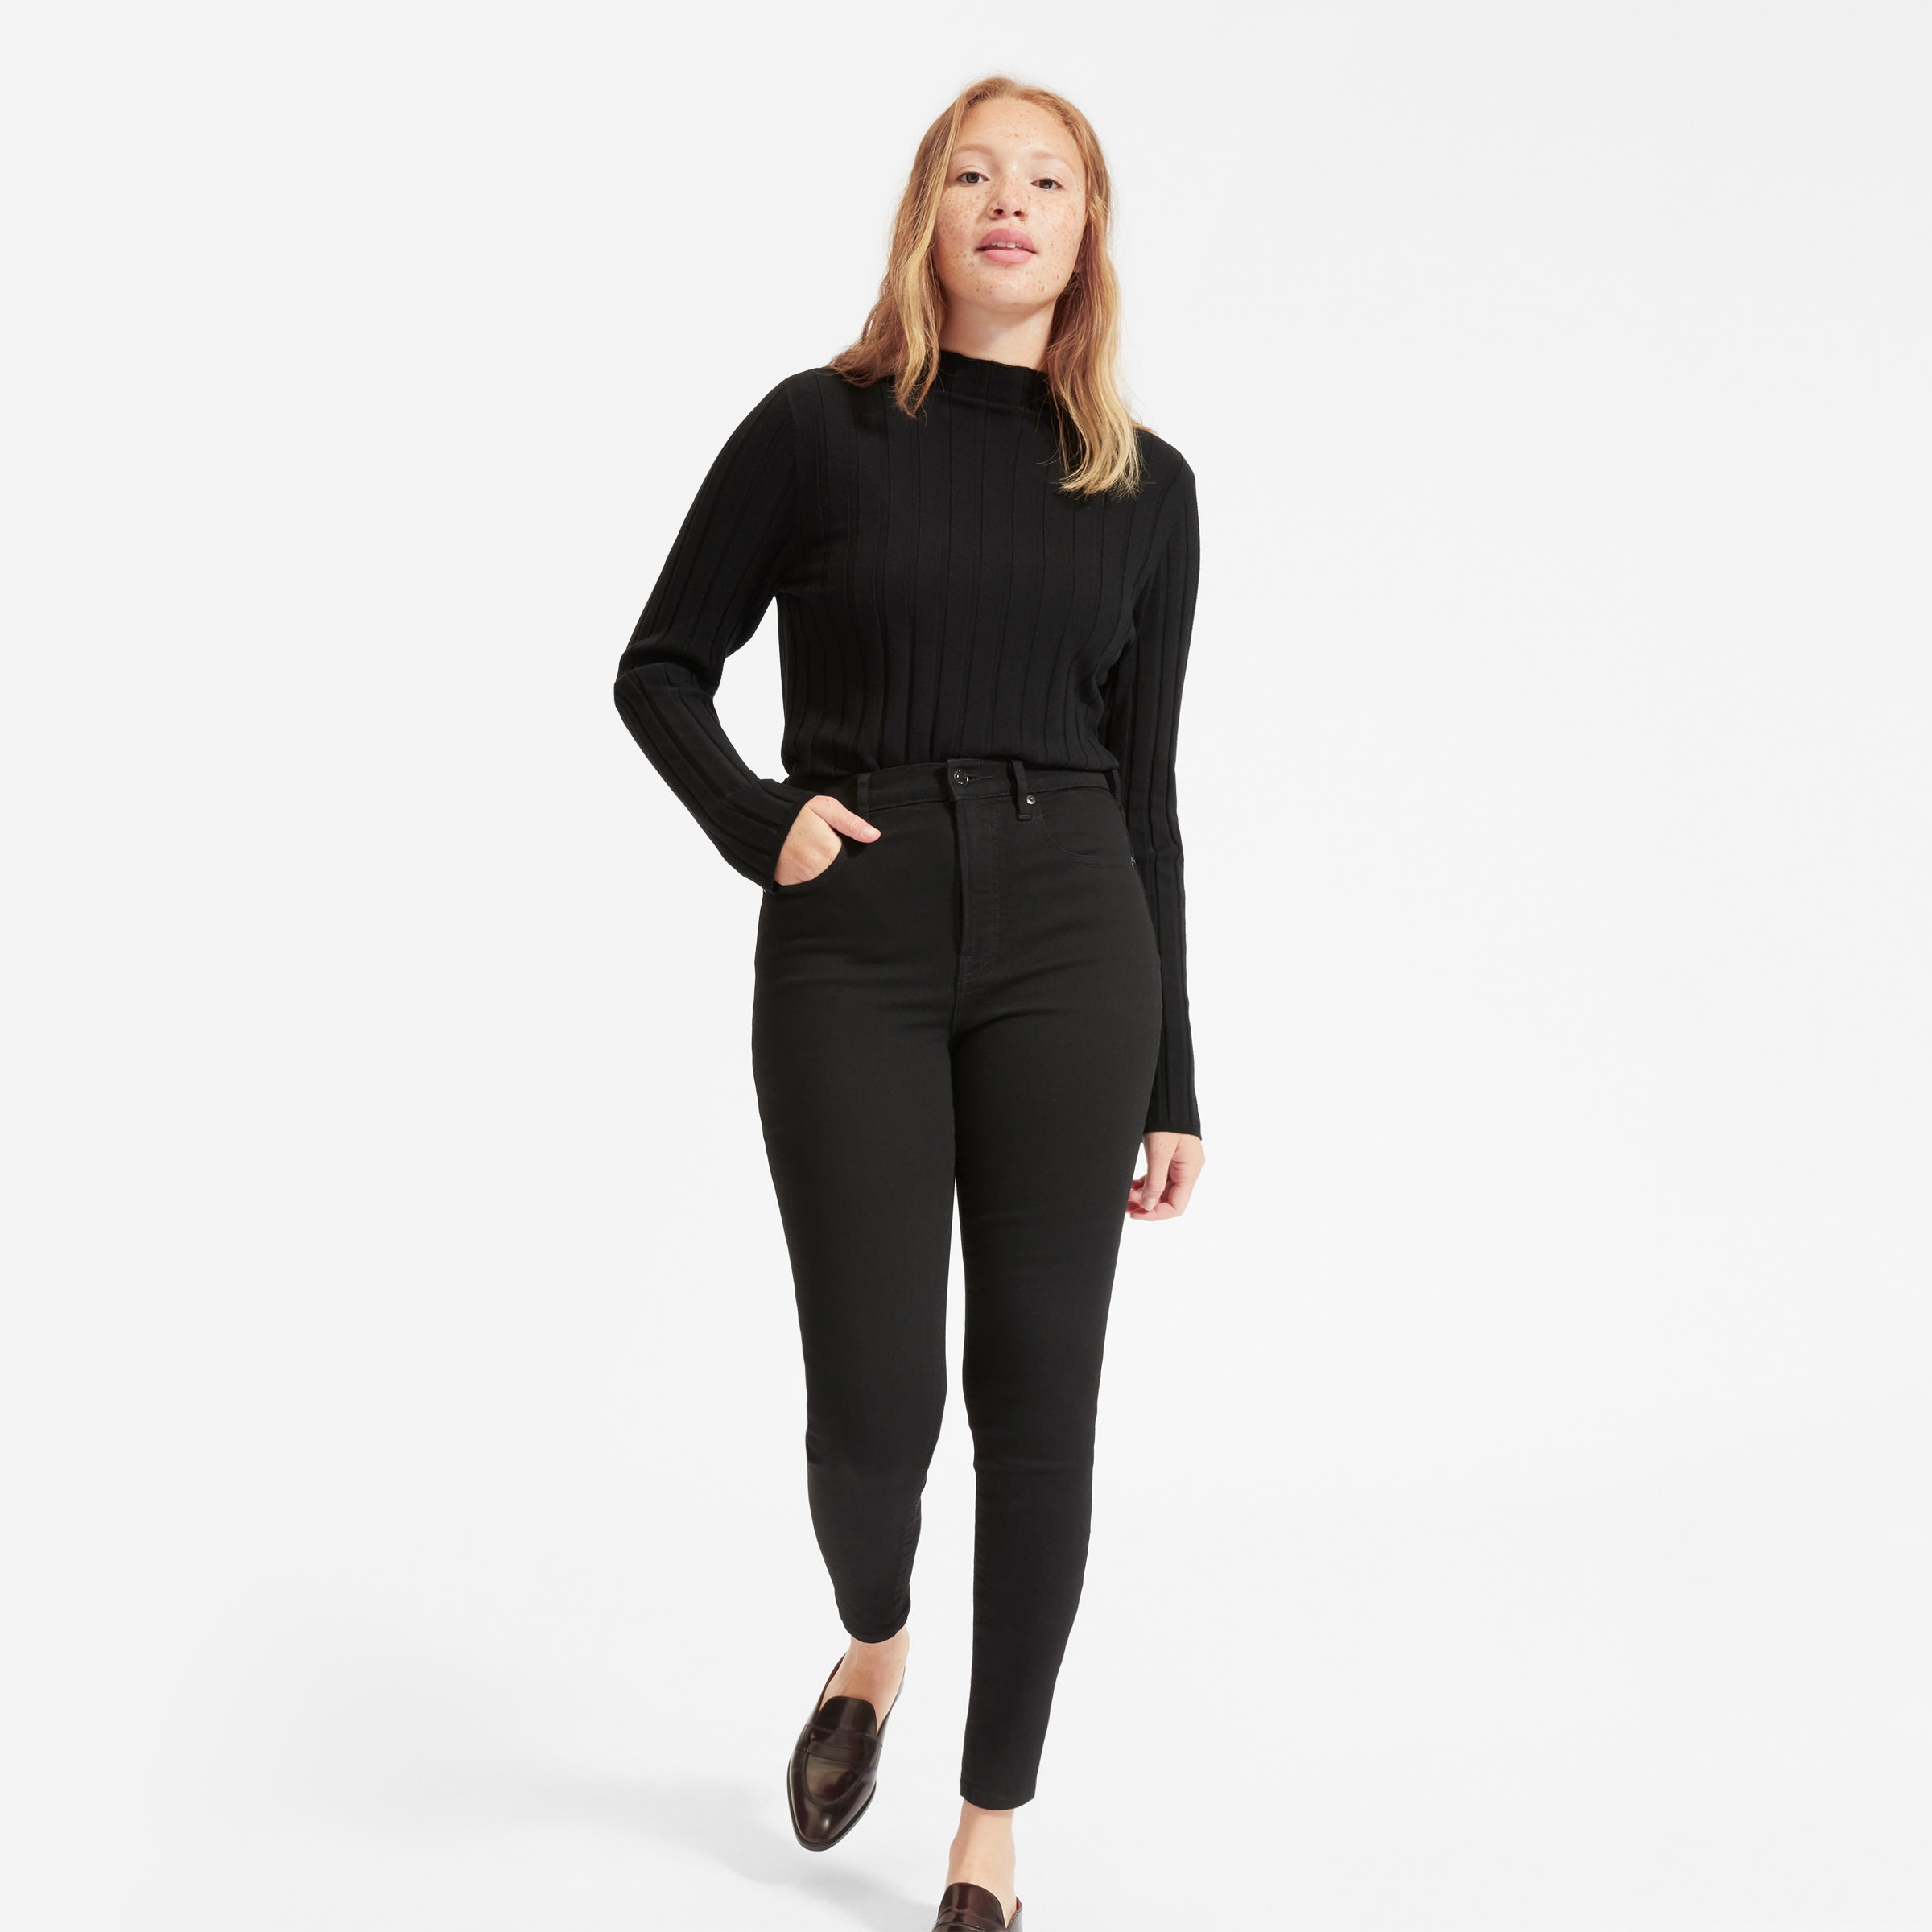 256c7f96c48 High Rise & Skinny Jeans for Women | Everlane